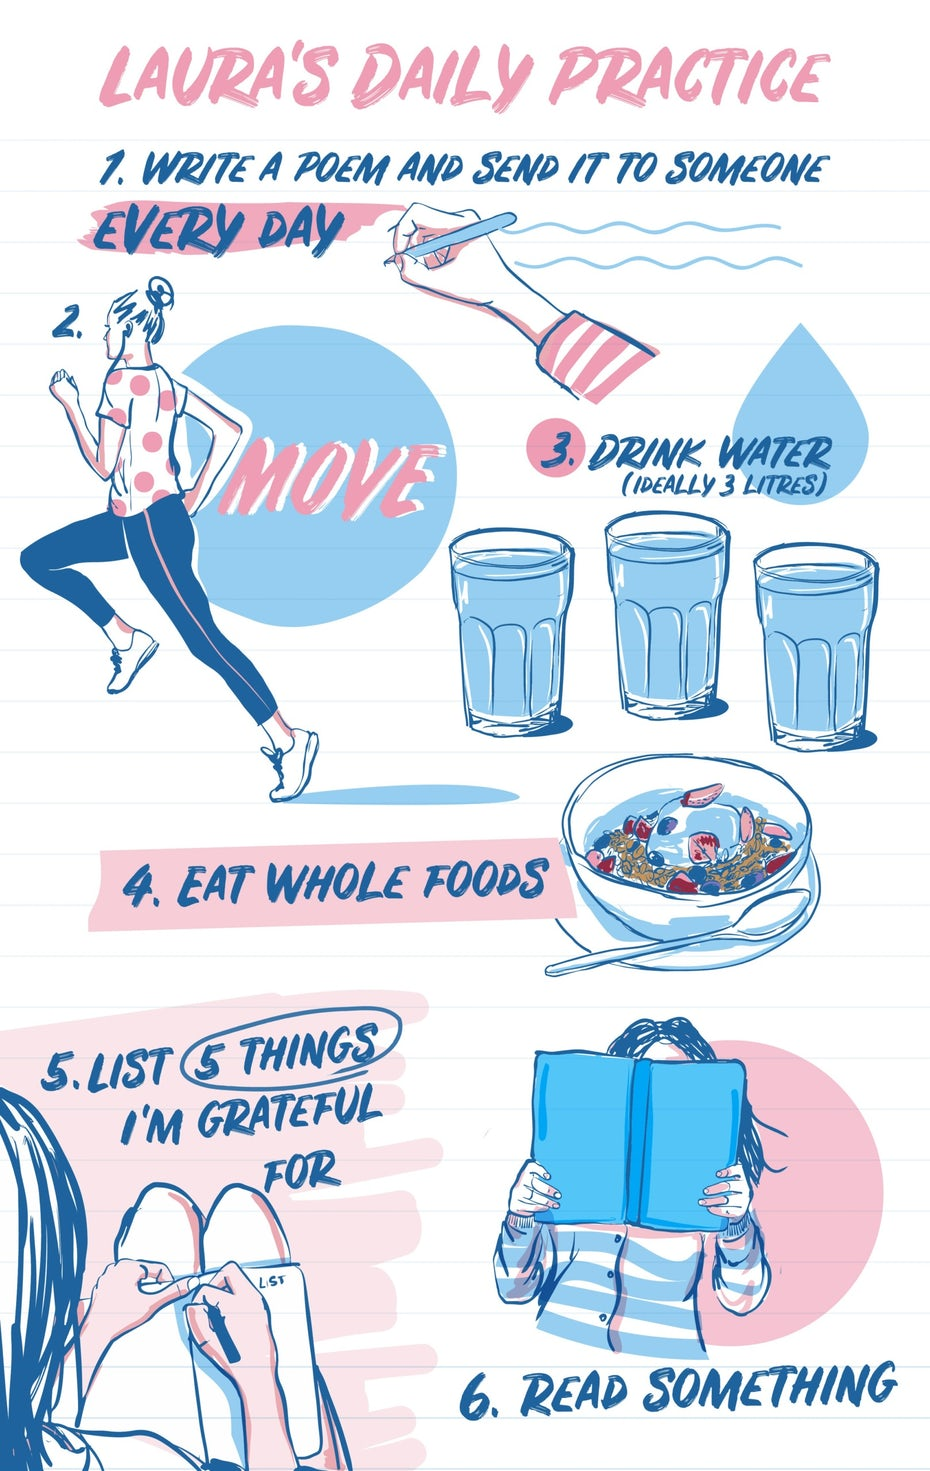 illustration interspersed with text describing healthy habits